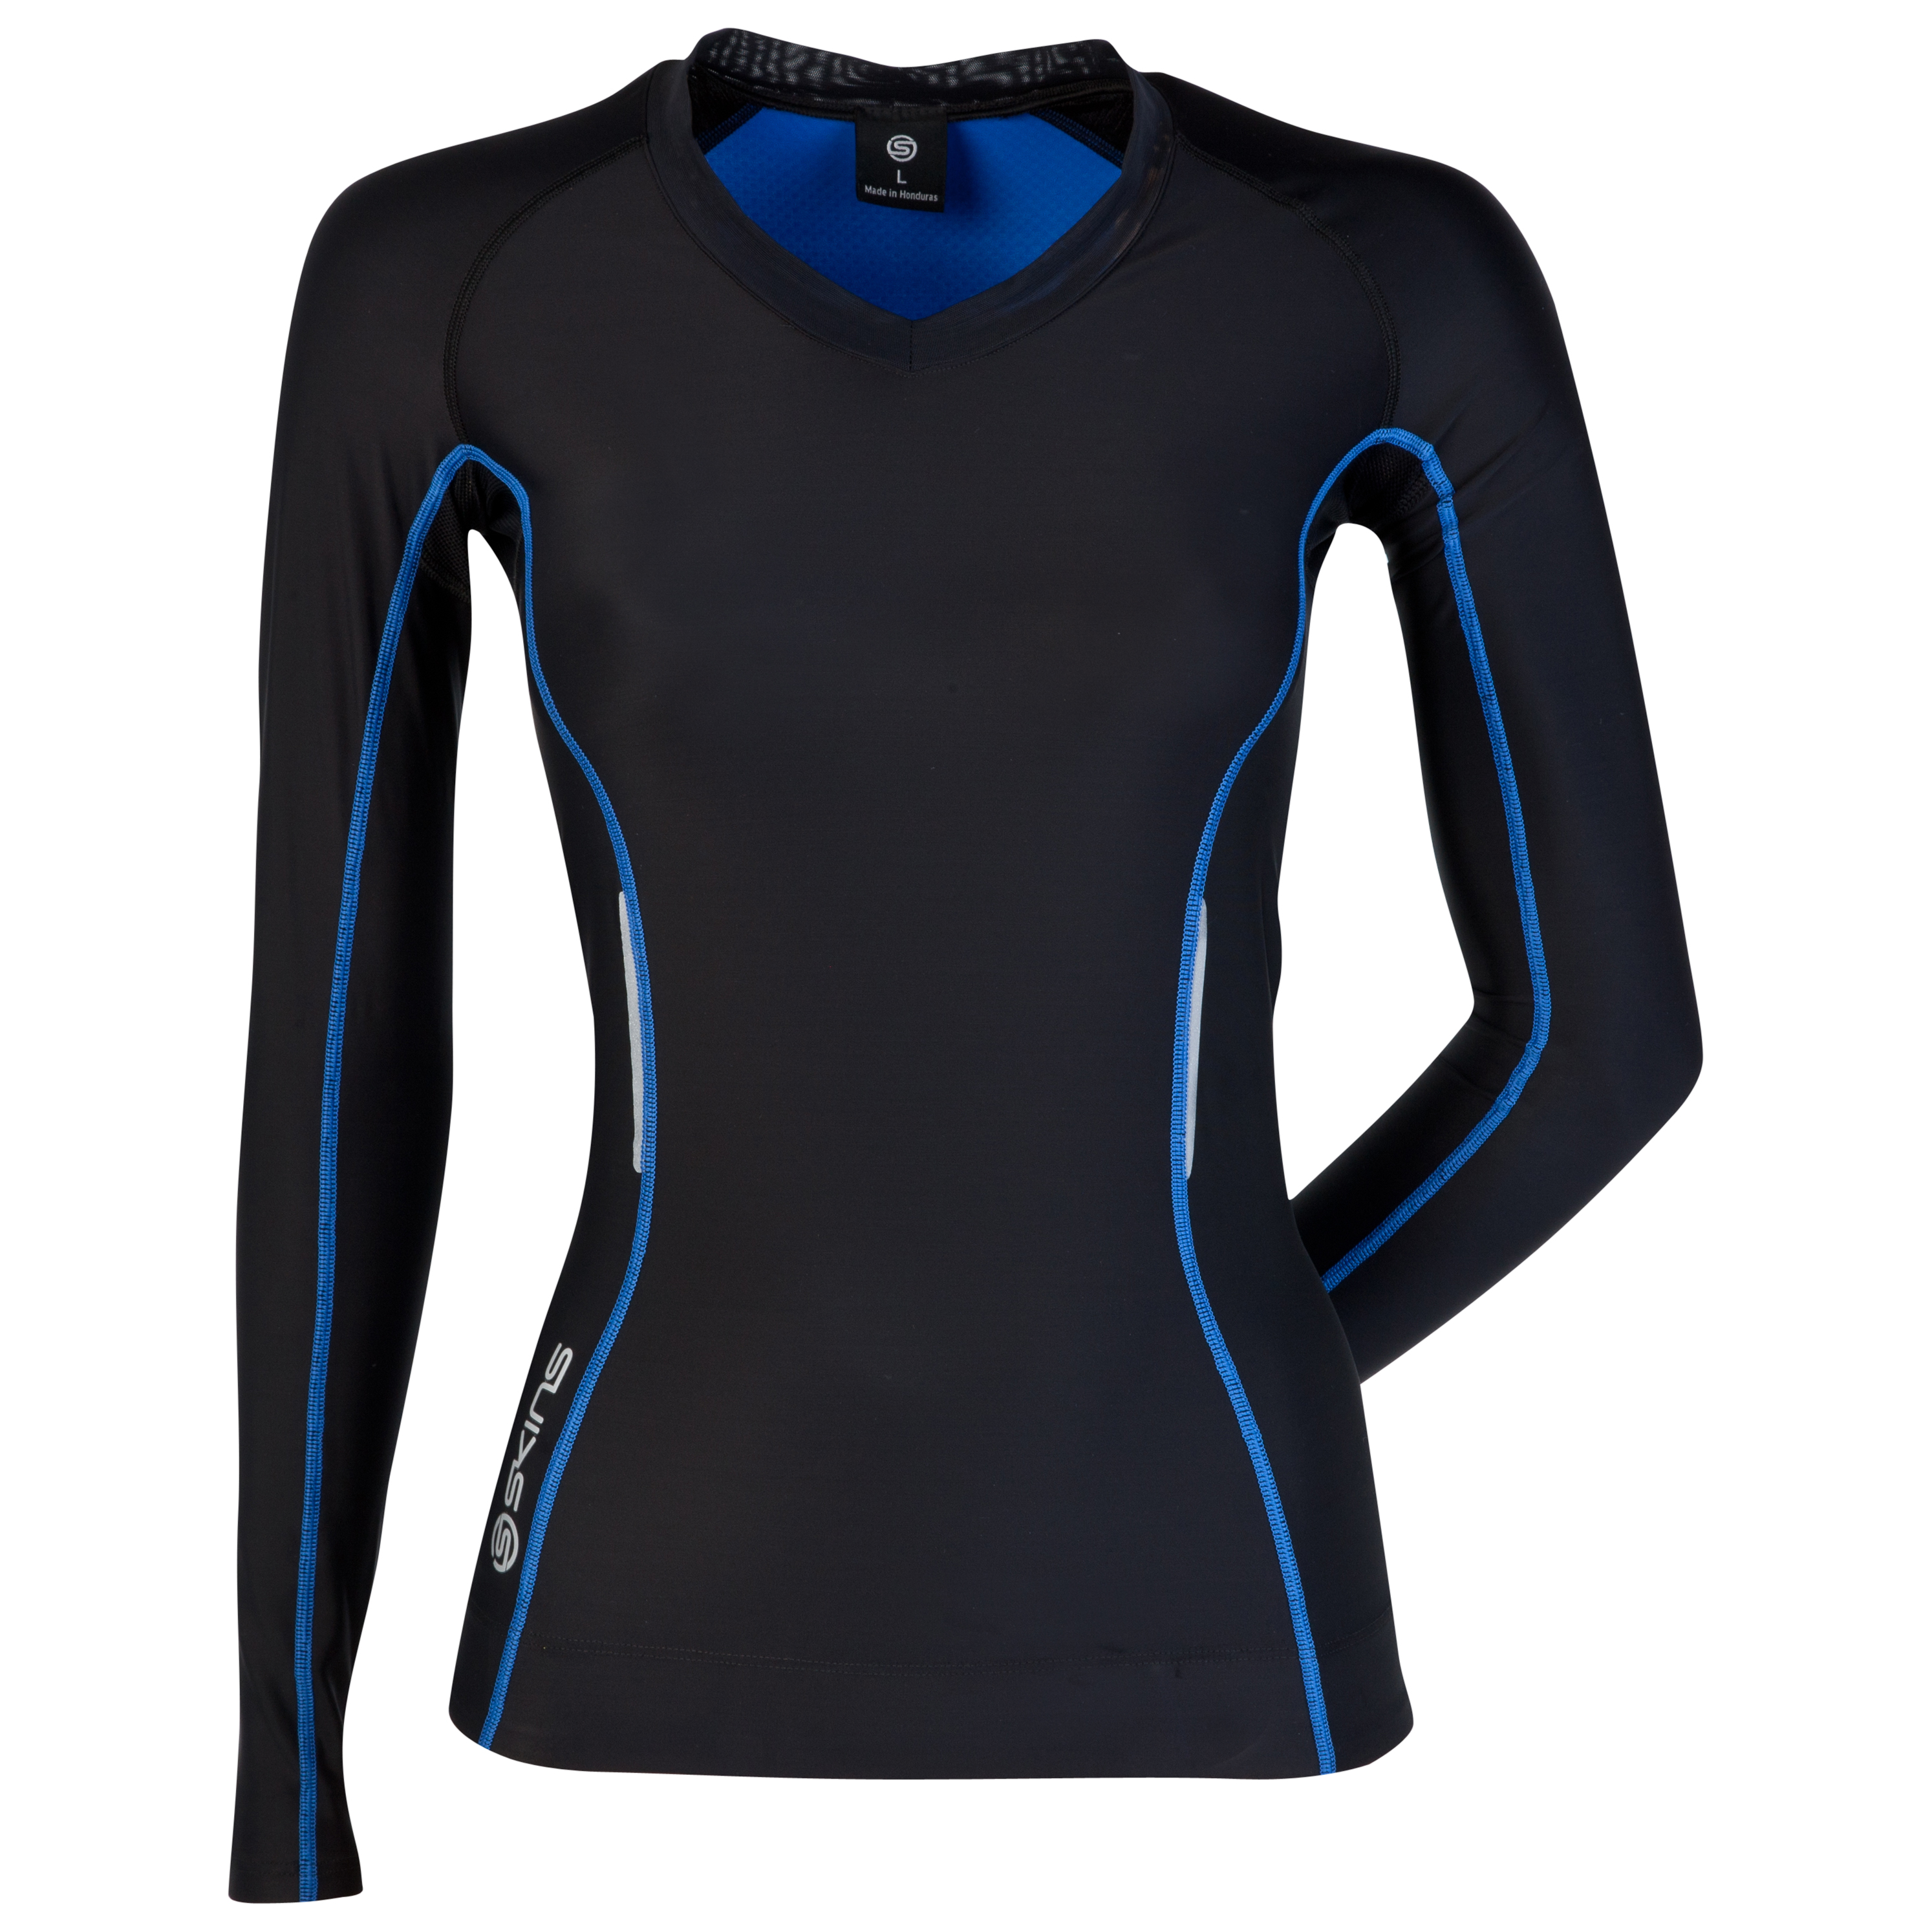 Skins A200 Long Sleeve Top - Black/Blue - Womens